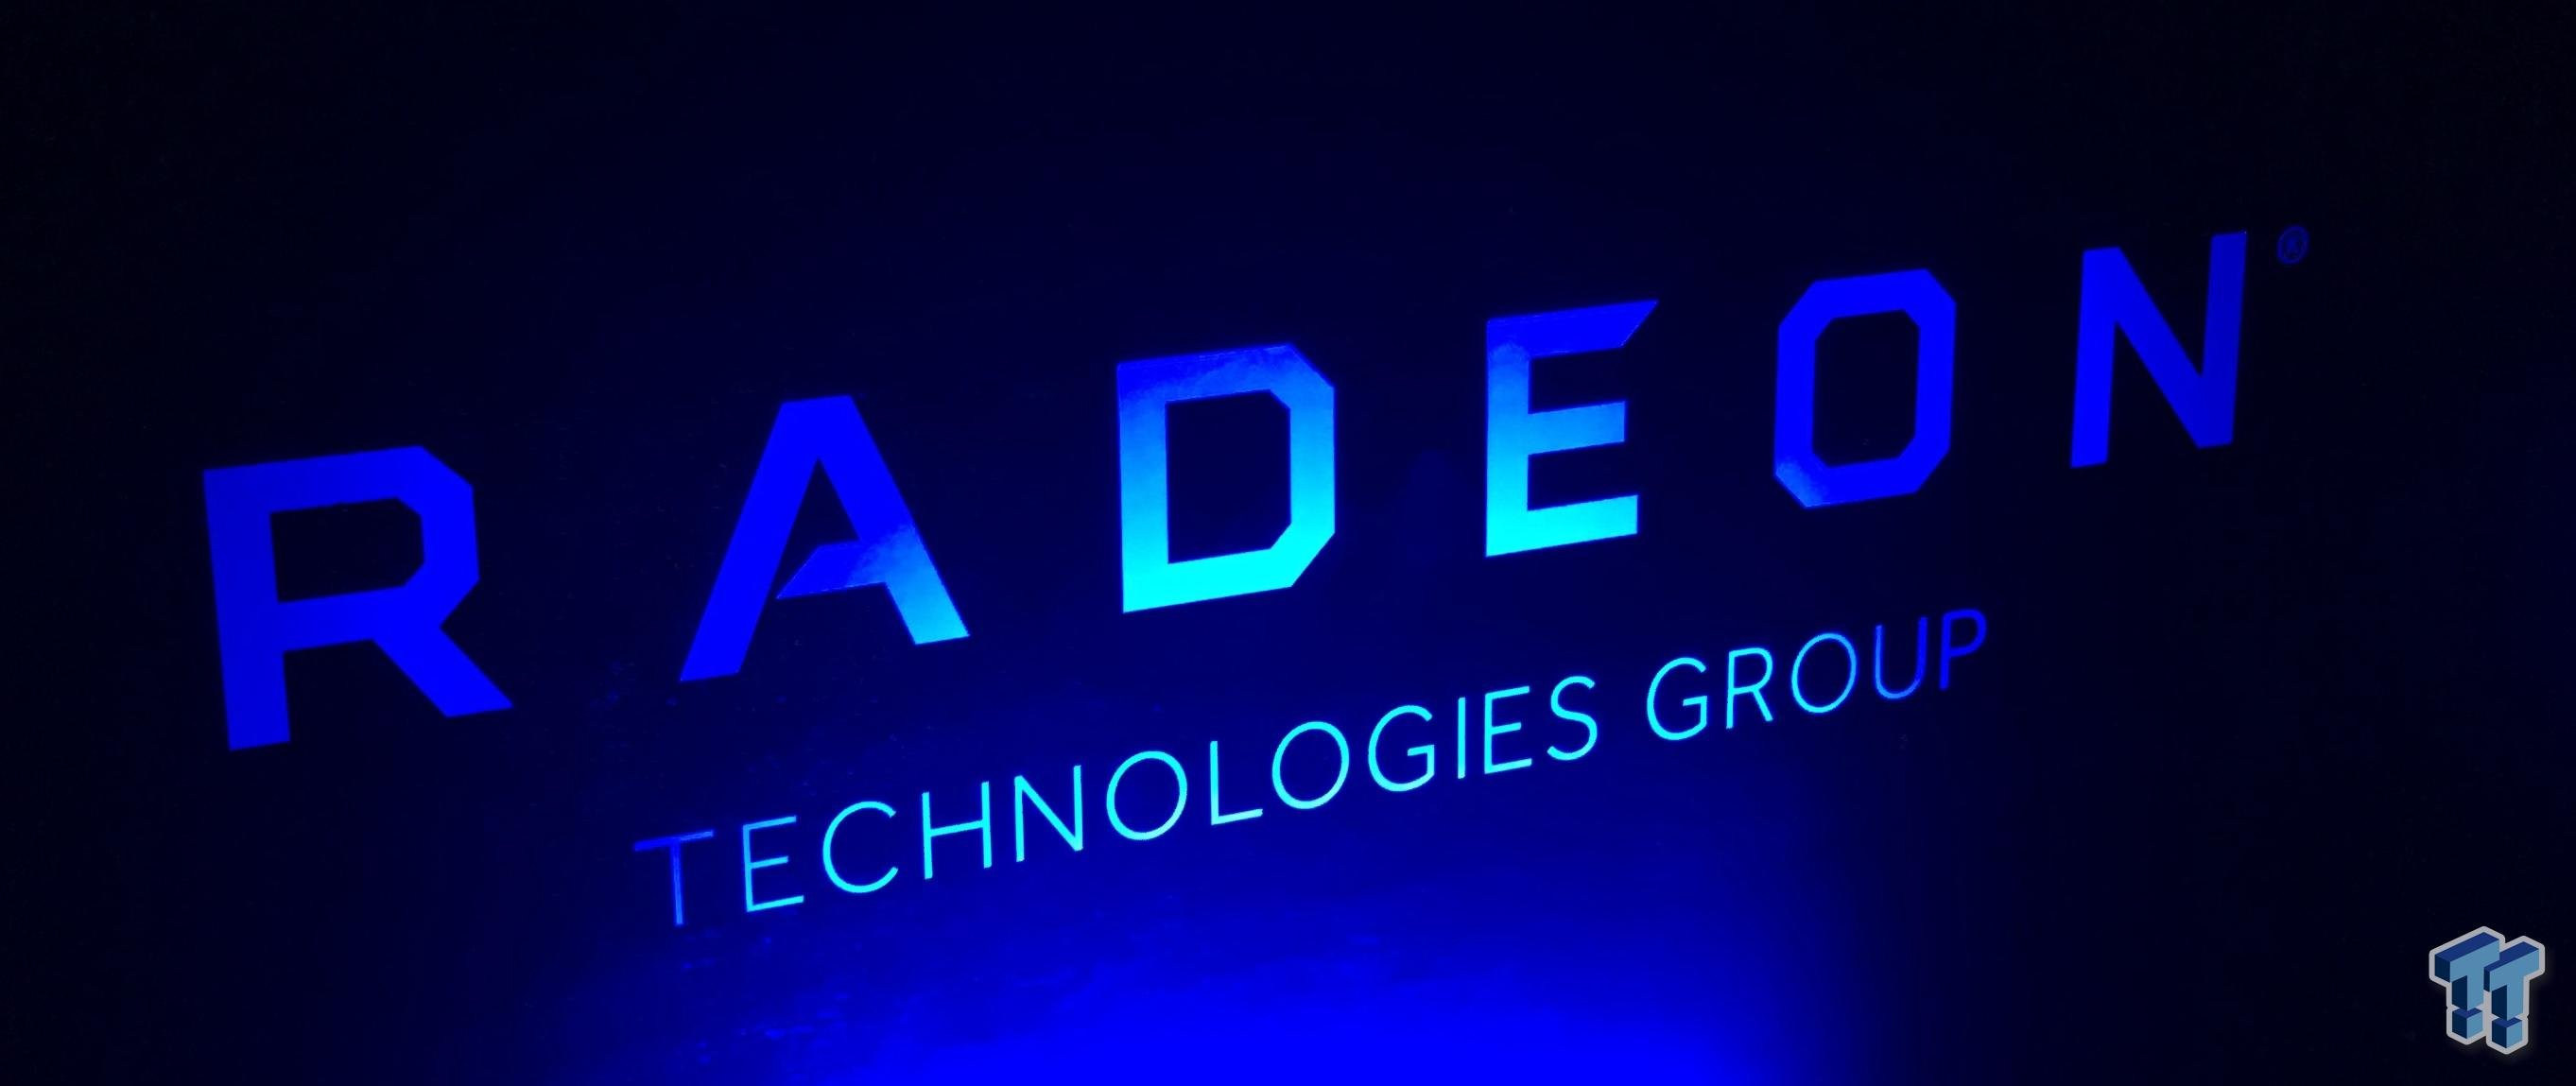 AMD working on next-gen GPU after Navi for 2020-2021